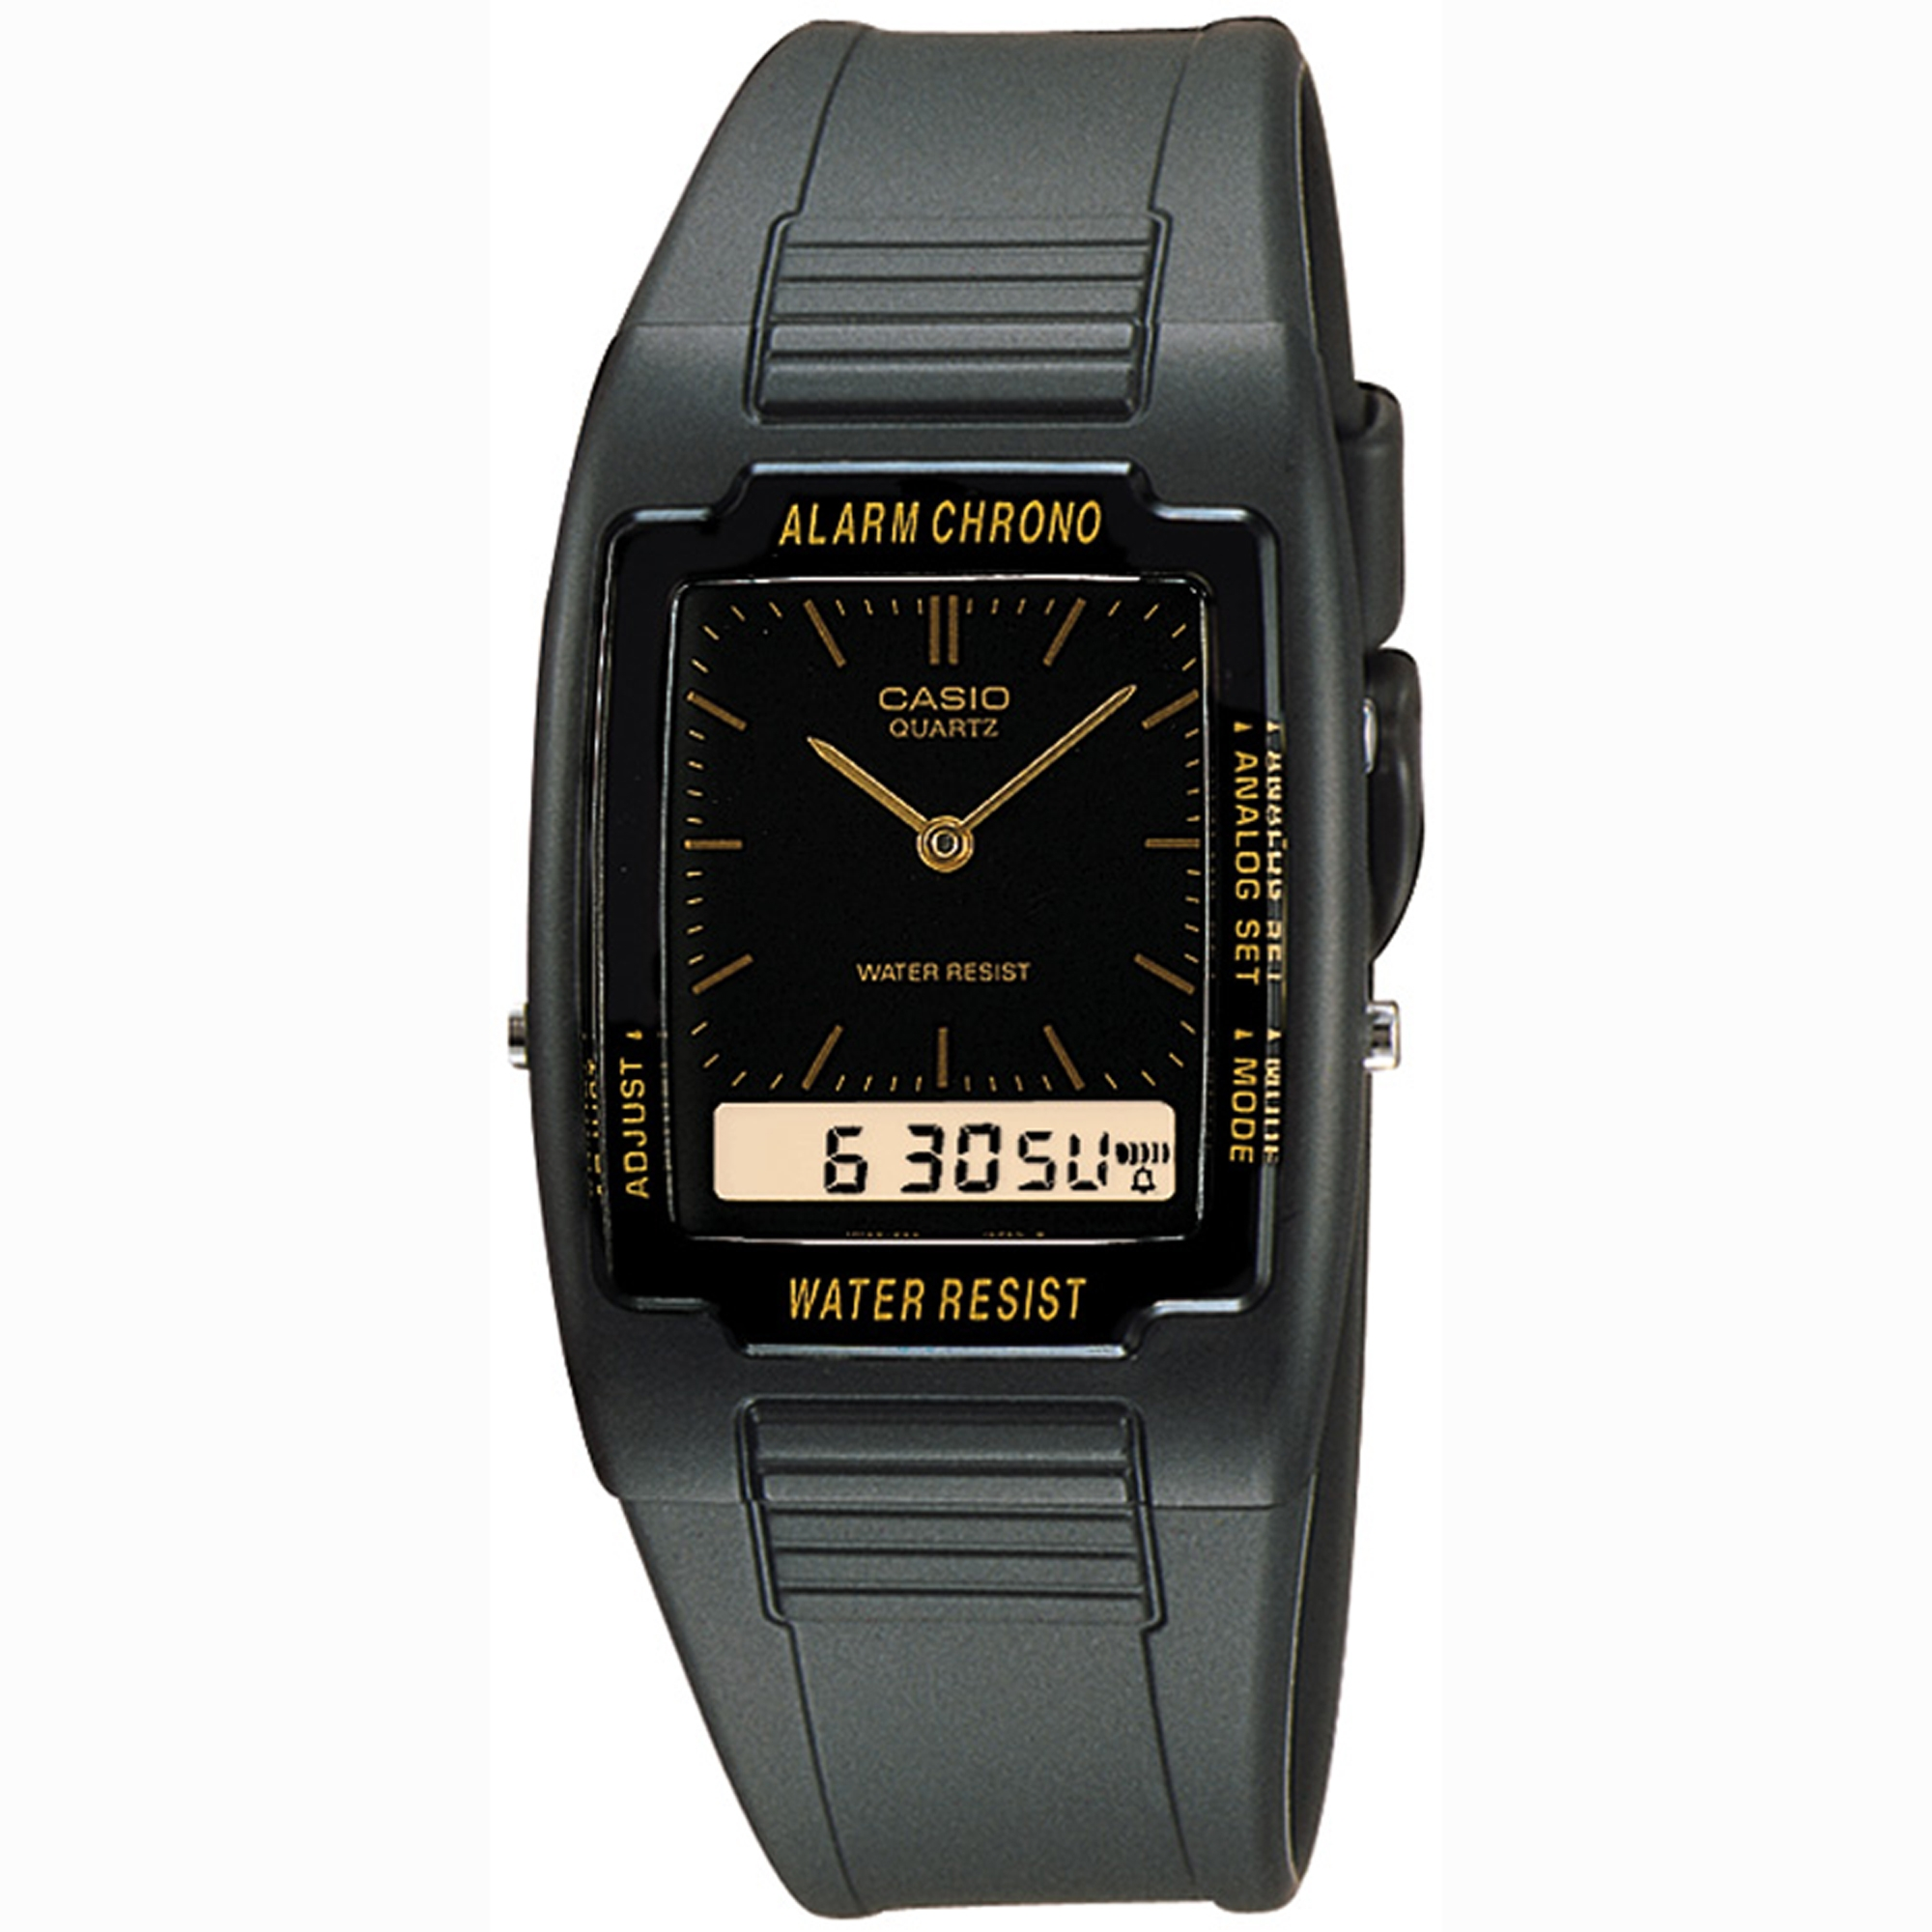 Casio Men's Classic Ana-Digi Watch